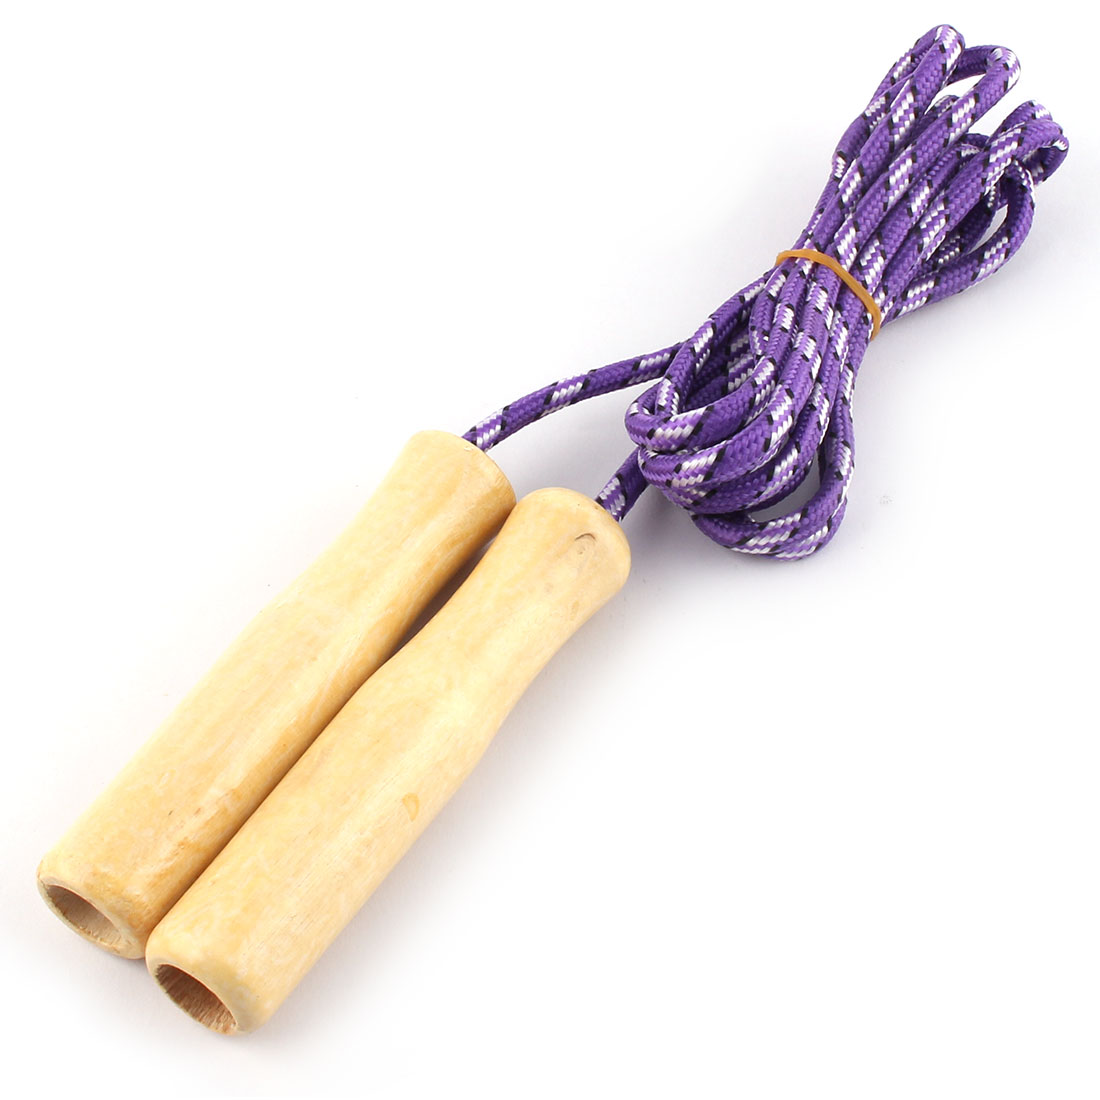 Exercise Wooden Handle Skipping Jumping Rope Wood Color Purple 2.3 Meters Length